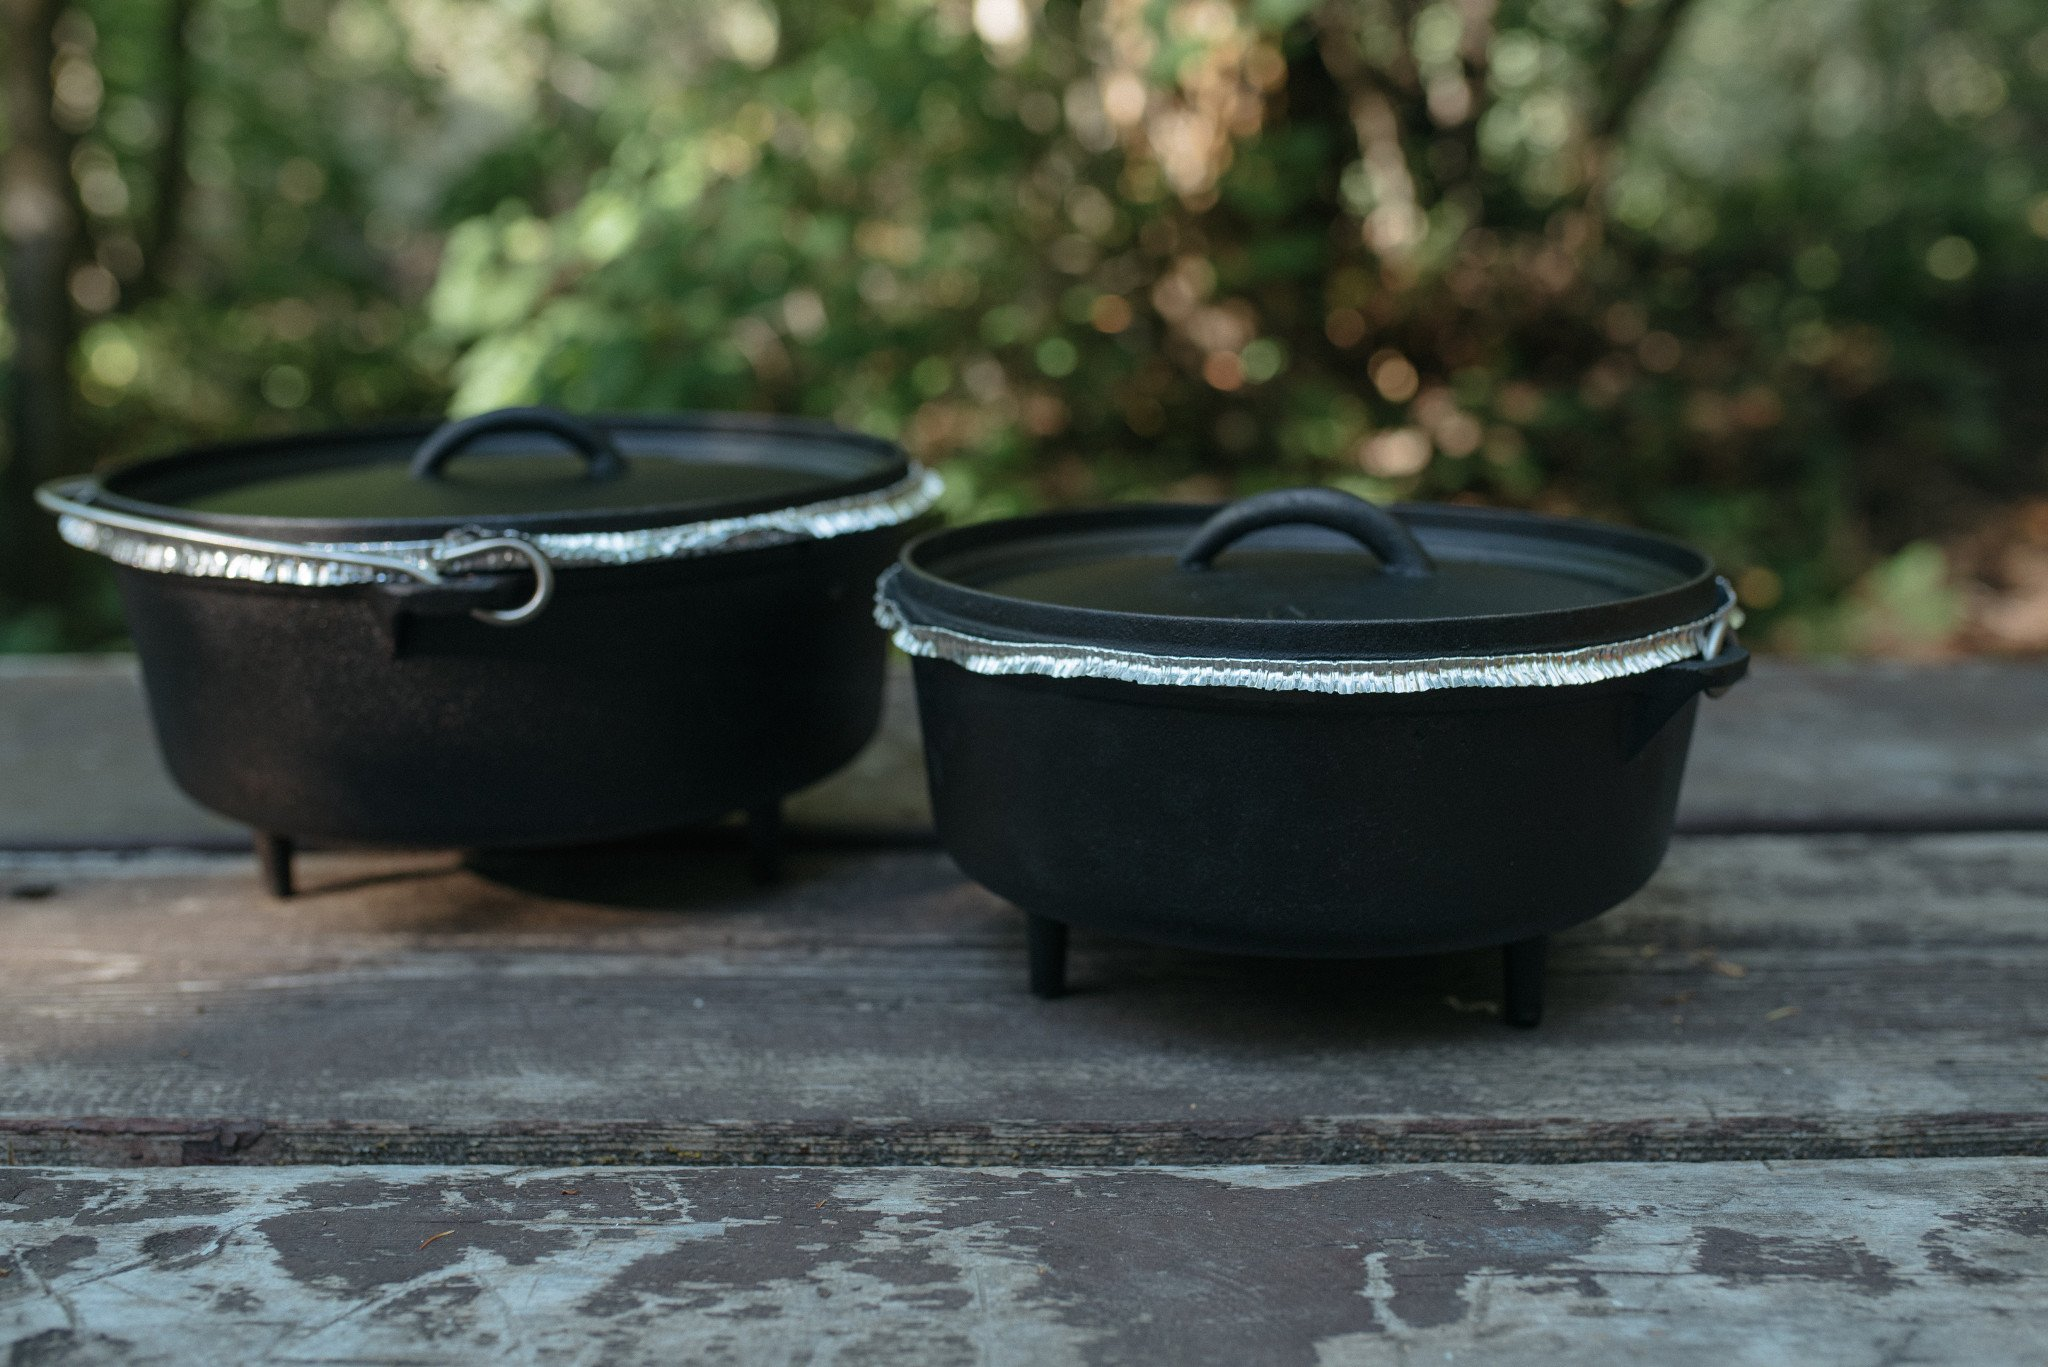 9 1/3 Qt Seasoned Cast Iron Camp Oven by Camp Chef